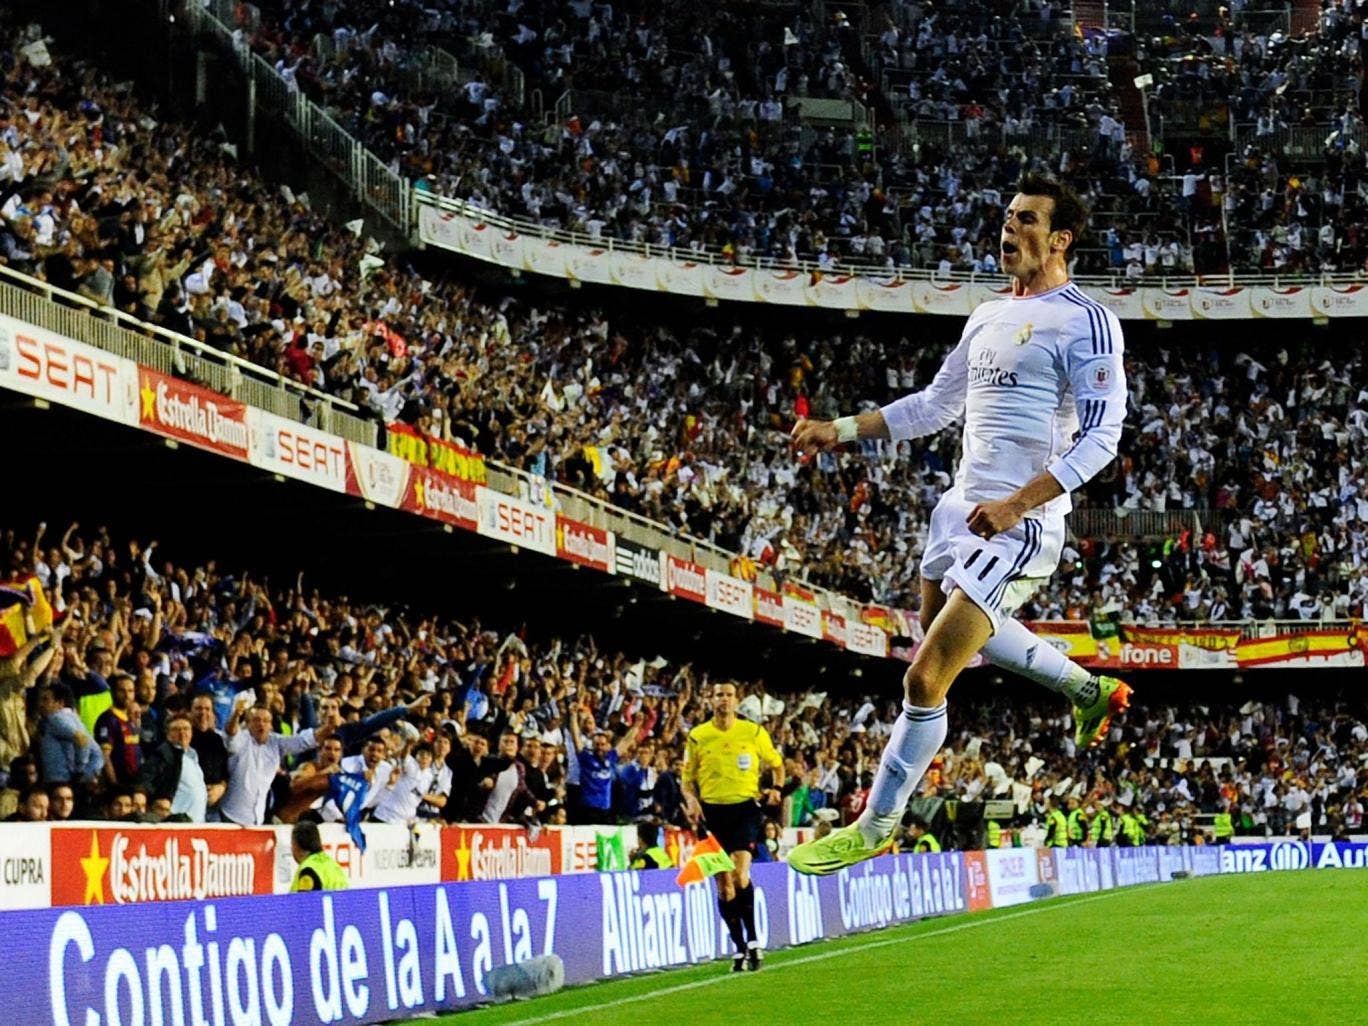 Gareth Bale celebrates scoring the winning goal for Real Madrid in the 2-1 Copa del Rey final victory over Barcelona